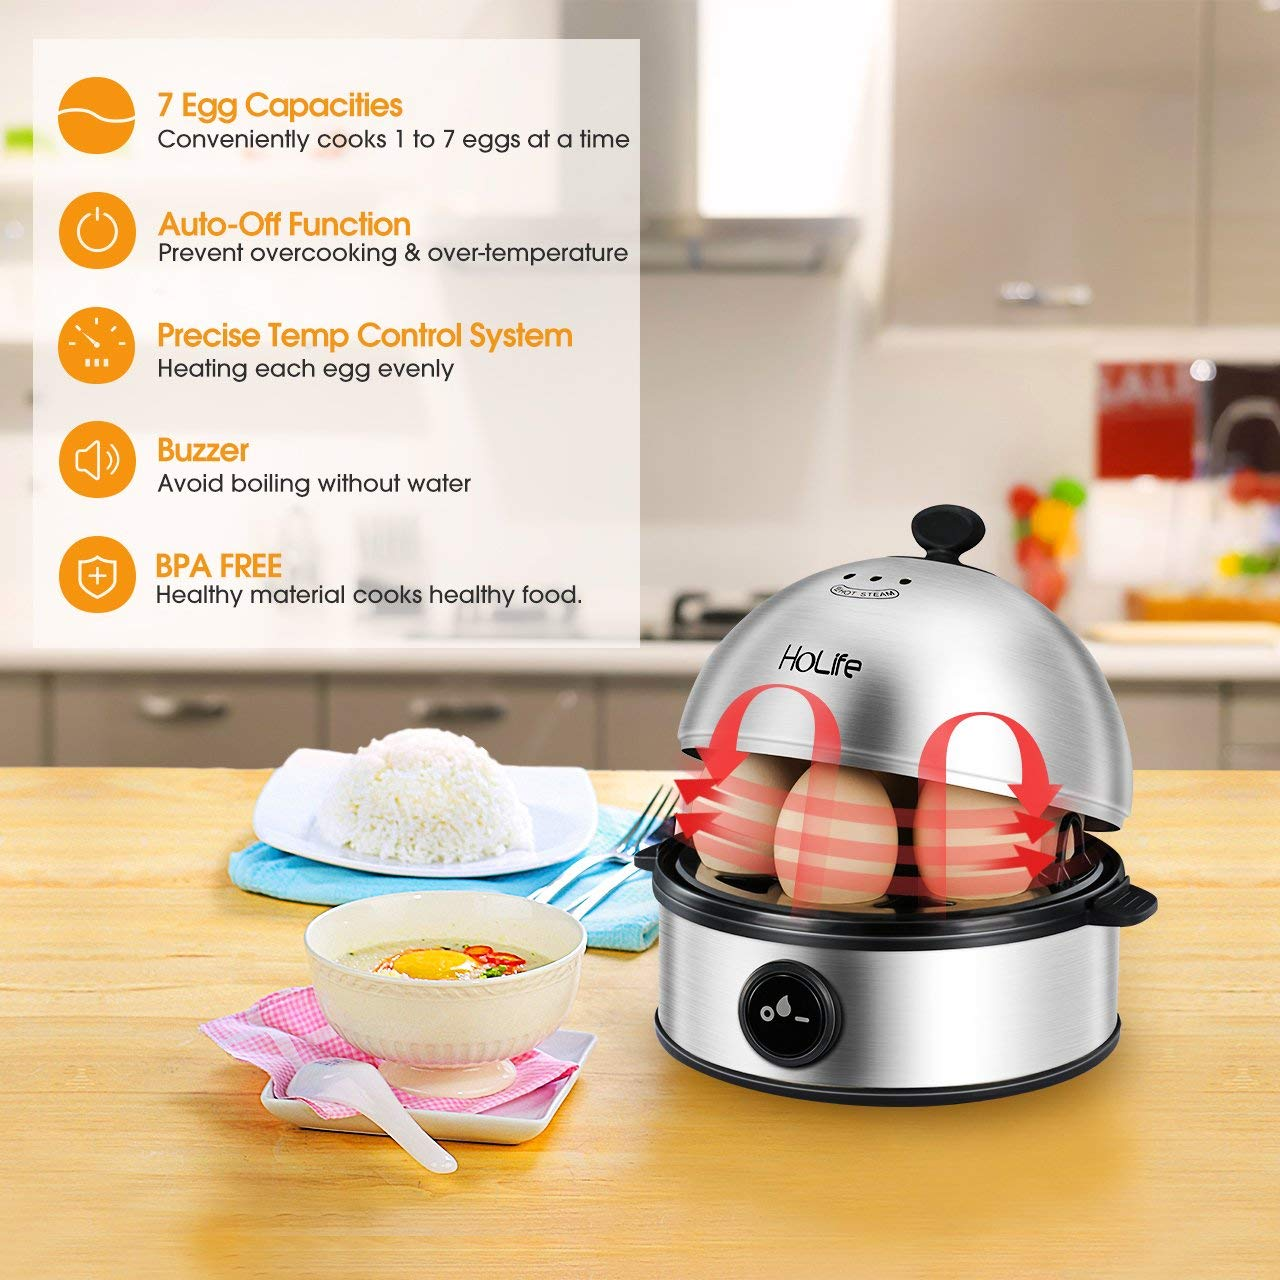 Ho Life Stainless Steel Egg Cooker